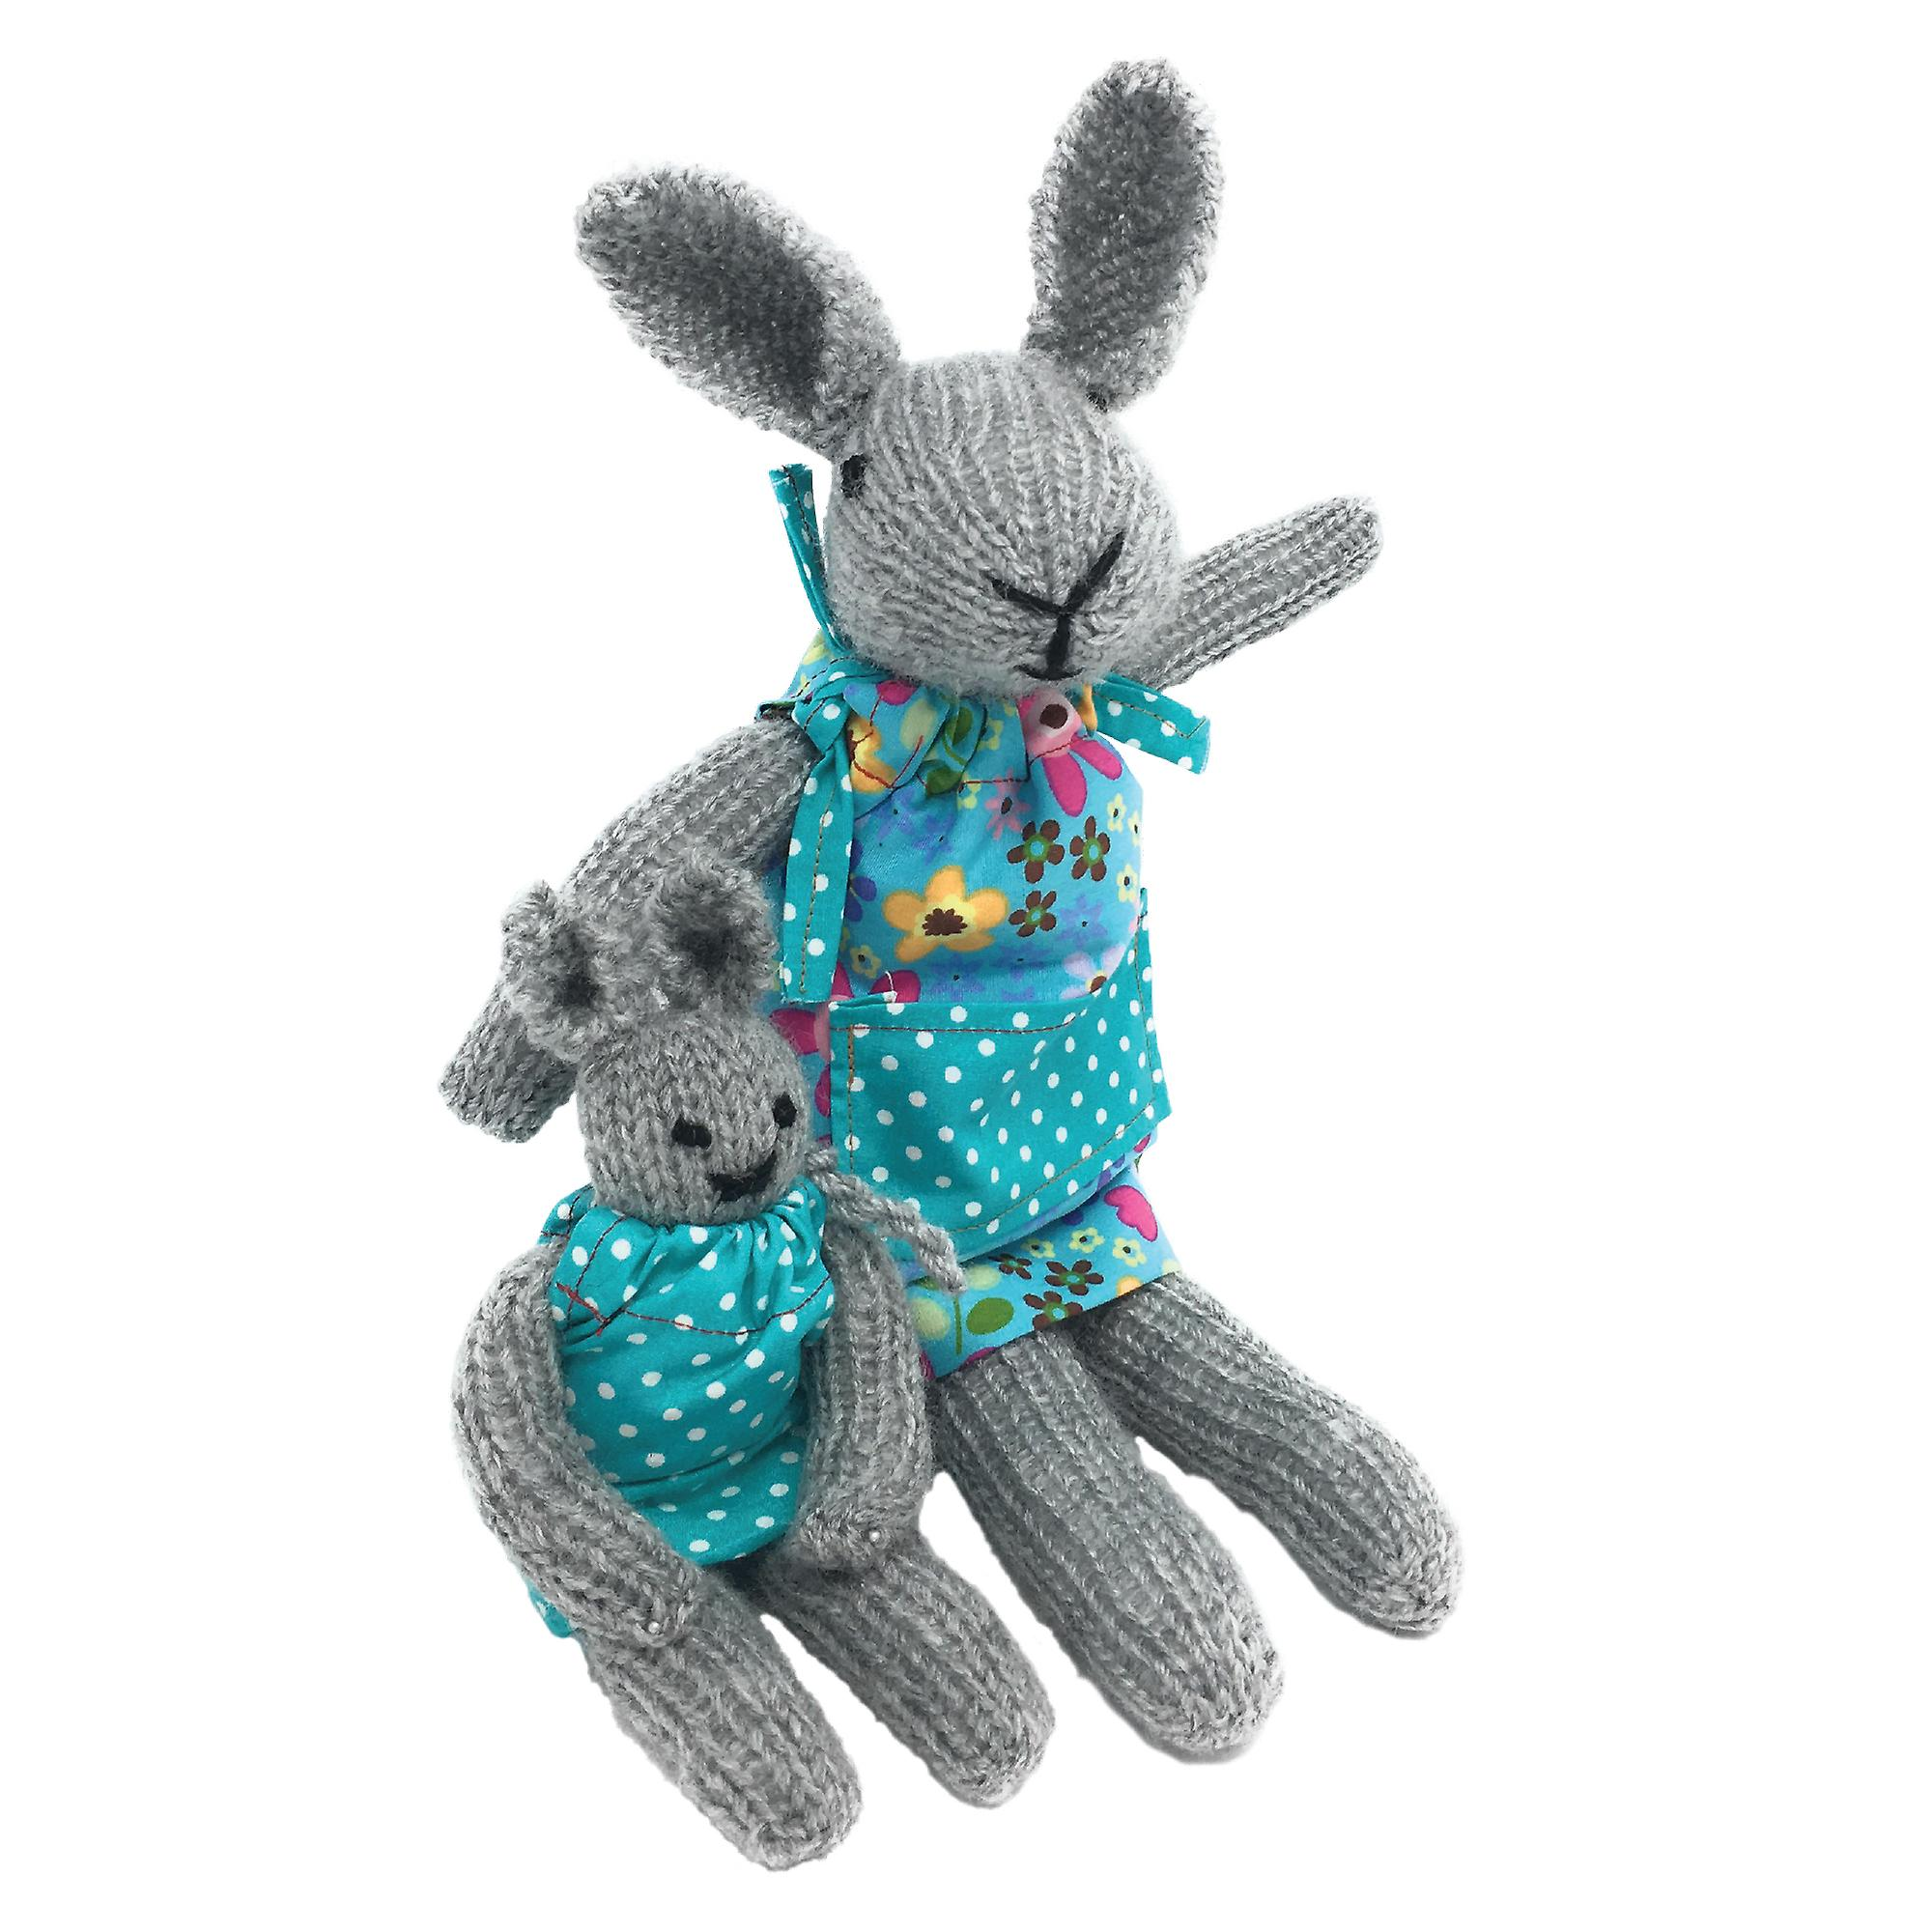 Knit Your Own Bunnies Kit